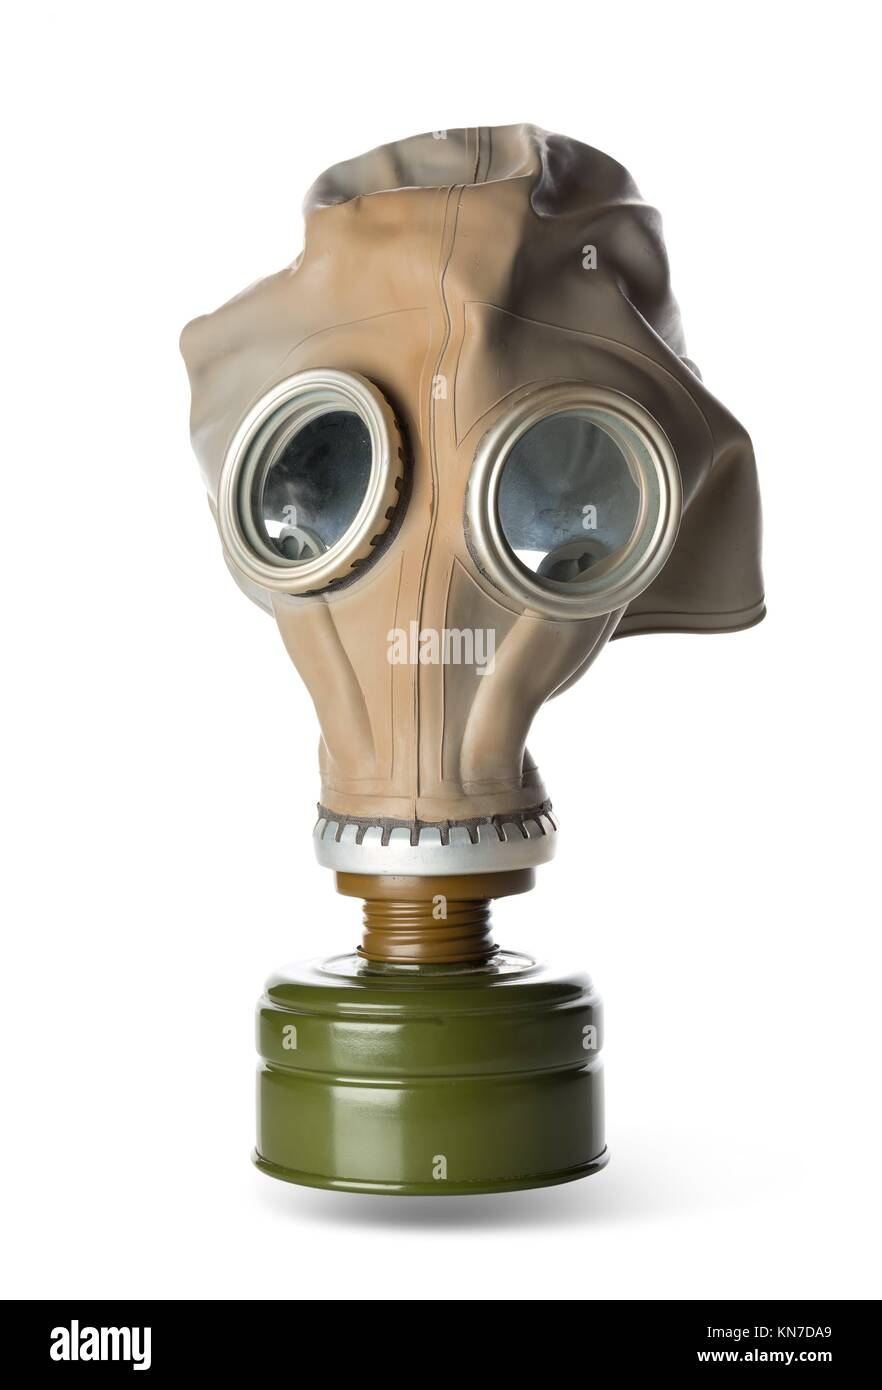 Rubber respirator isolated on a white background. - Stock Image